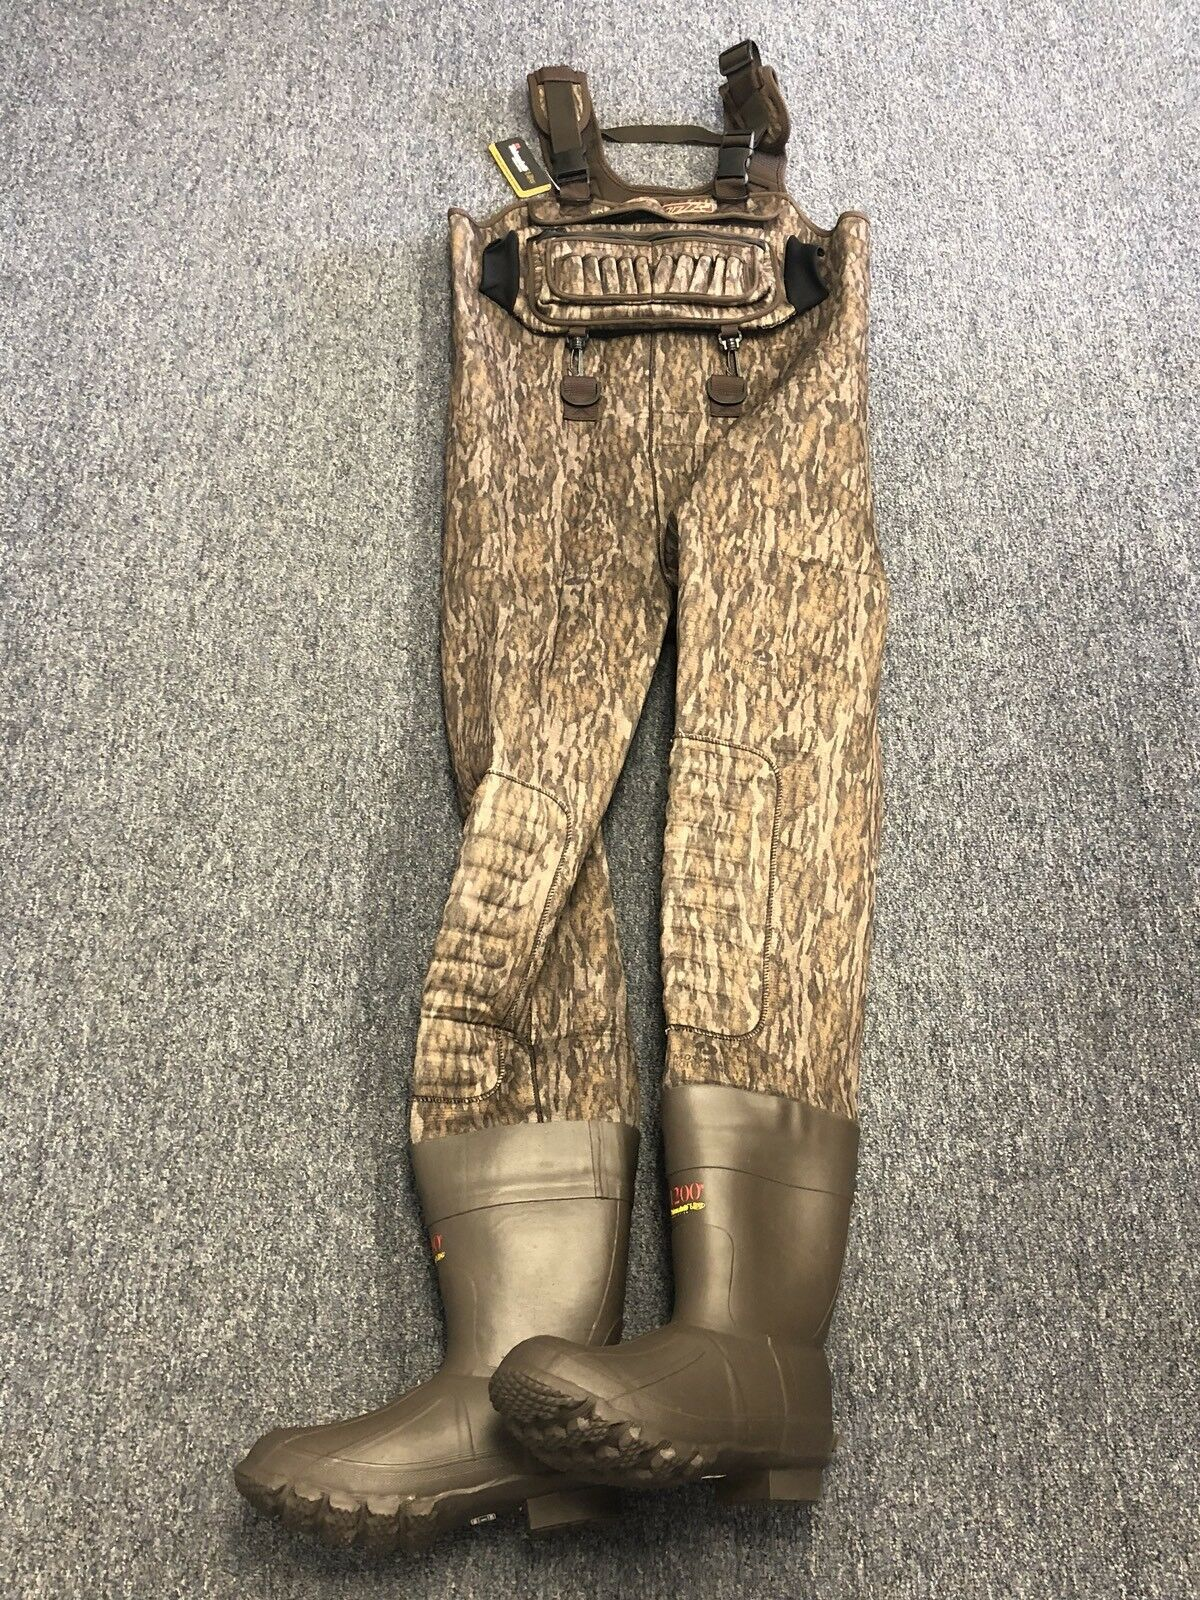 NEW 4mm Waterfowler Botto and  Camo Neoprene Hunting Chest Wader Lug Size 11  get the latest